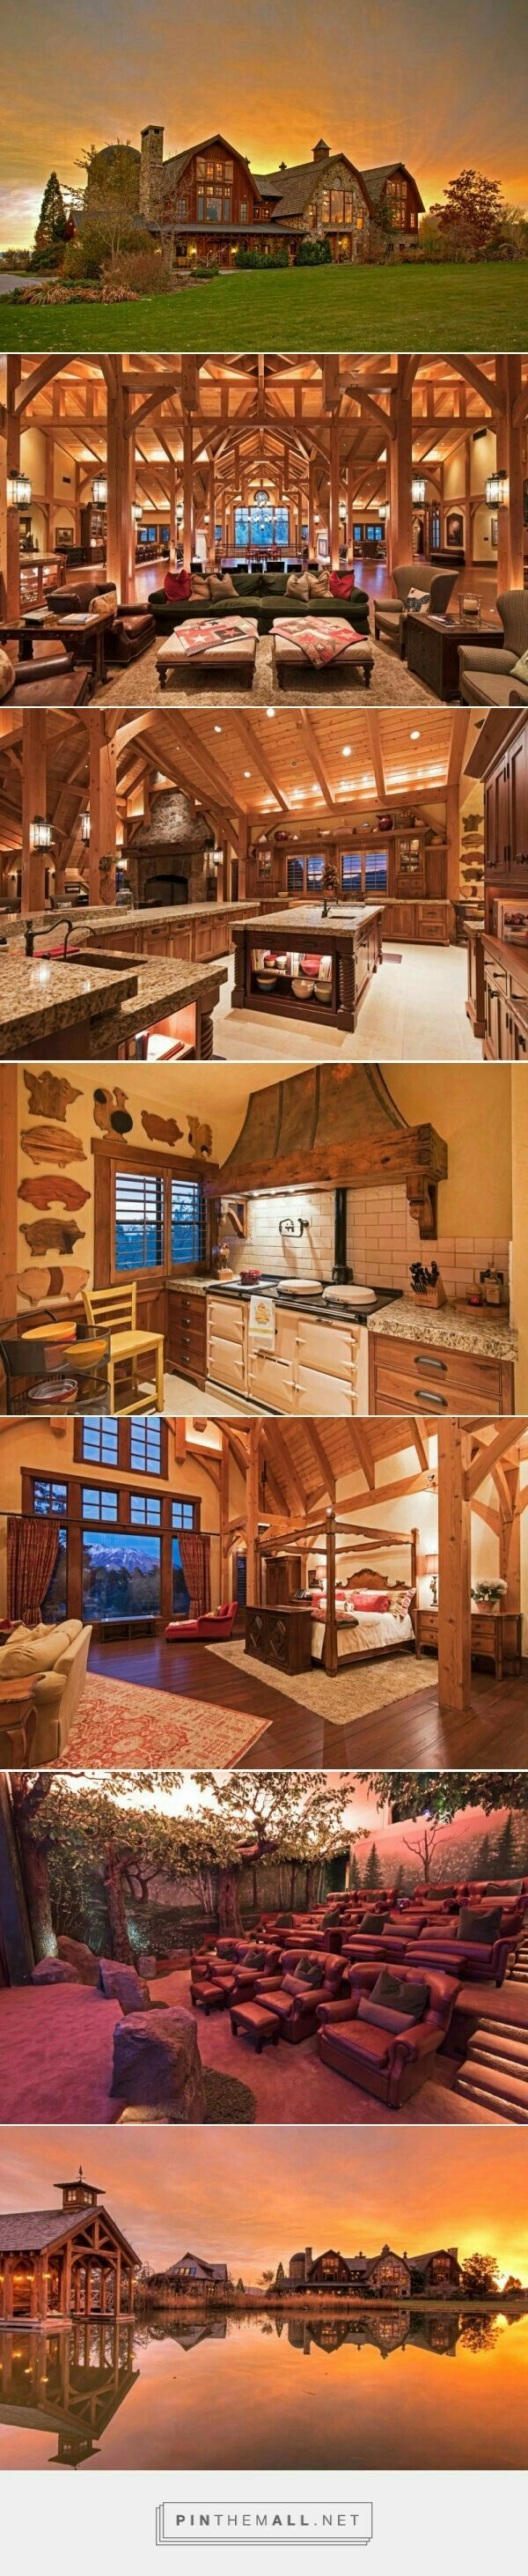 OMG yes this house is amazing!